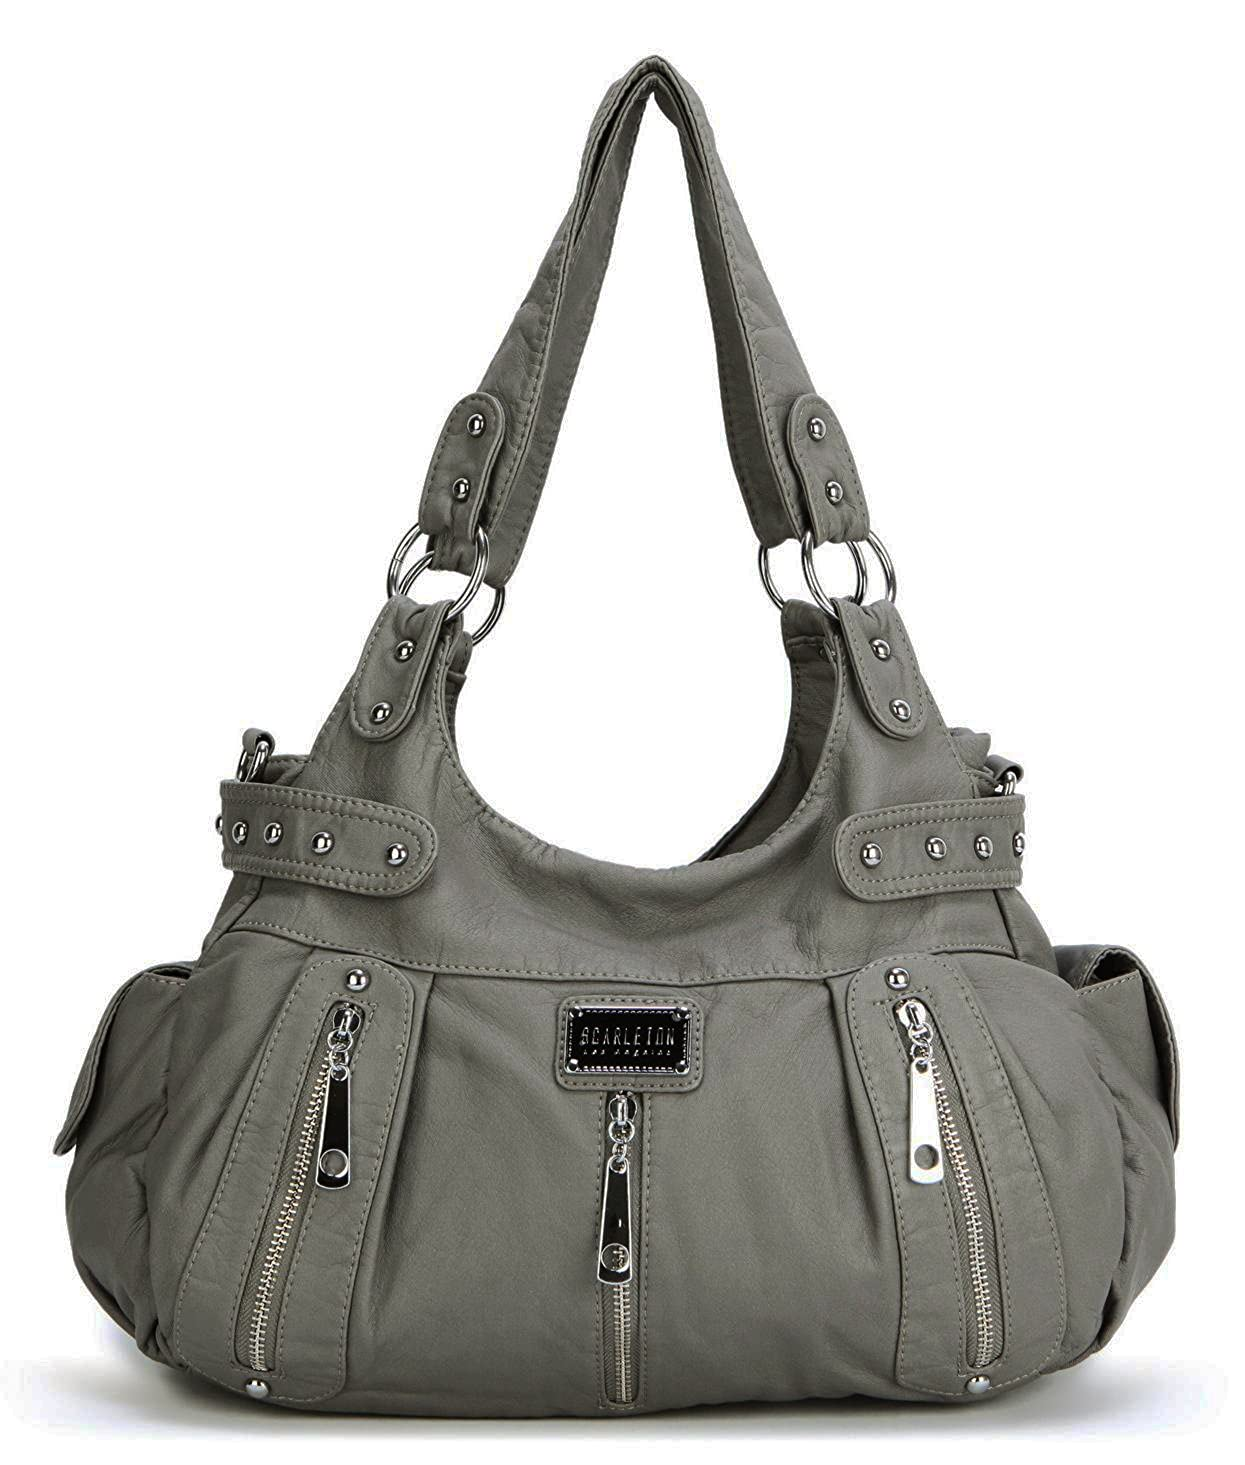 Scarleton 3 Front Zipper Washed Shoulder Bag H1292: Amazon.in: Clothing & Accessories